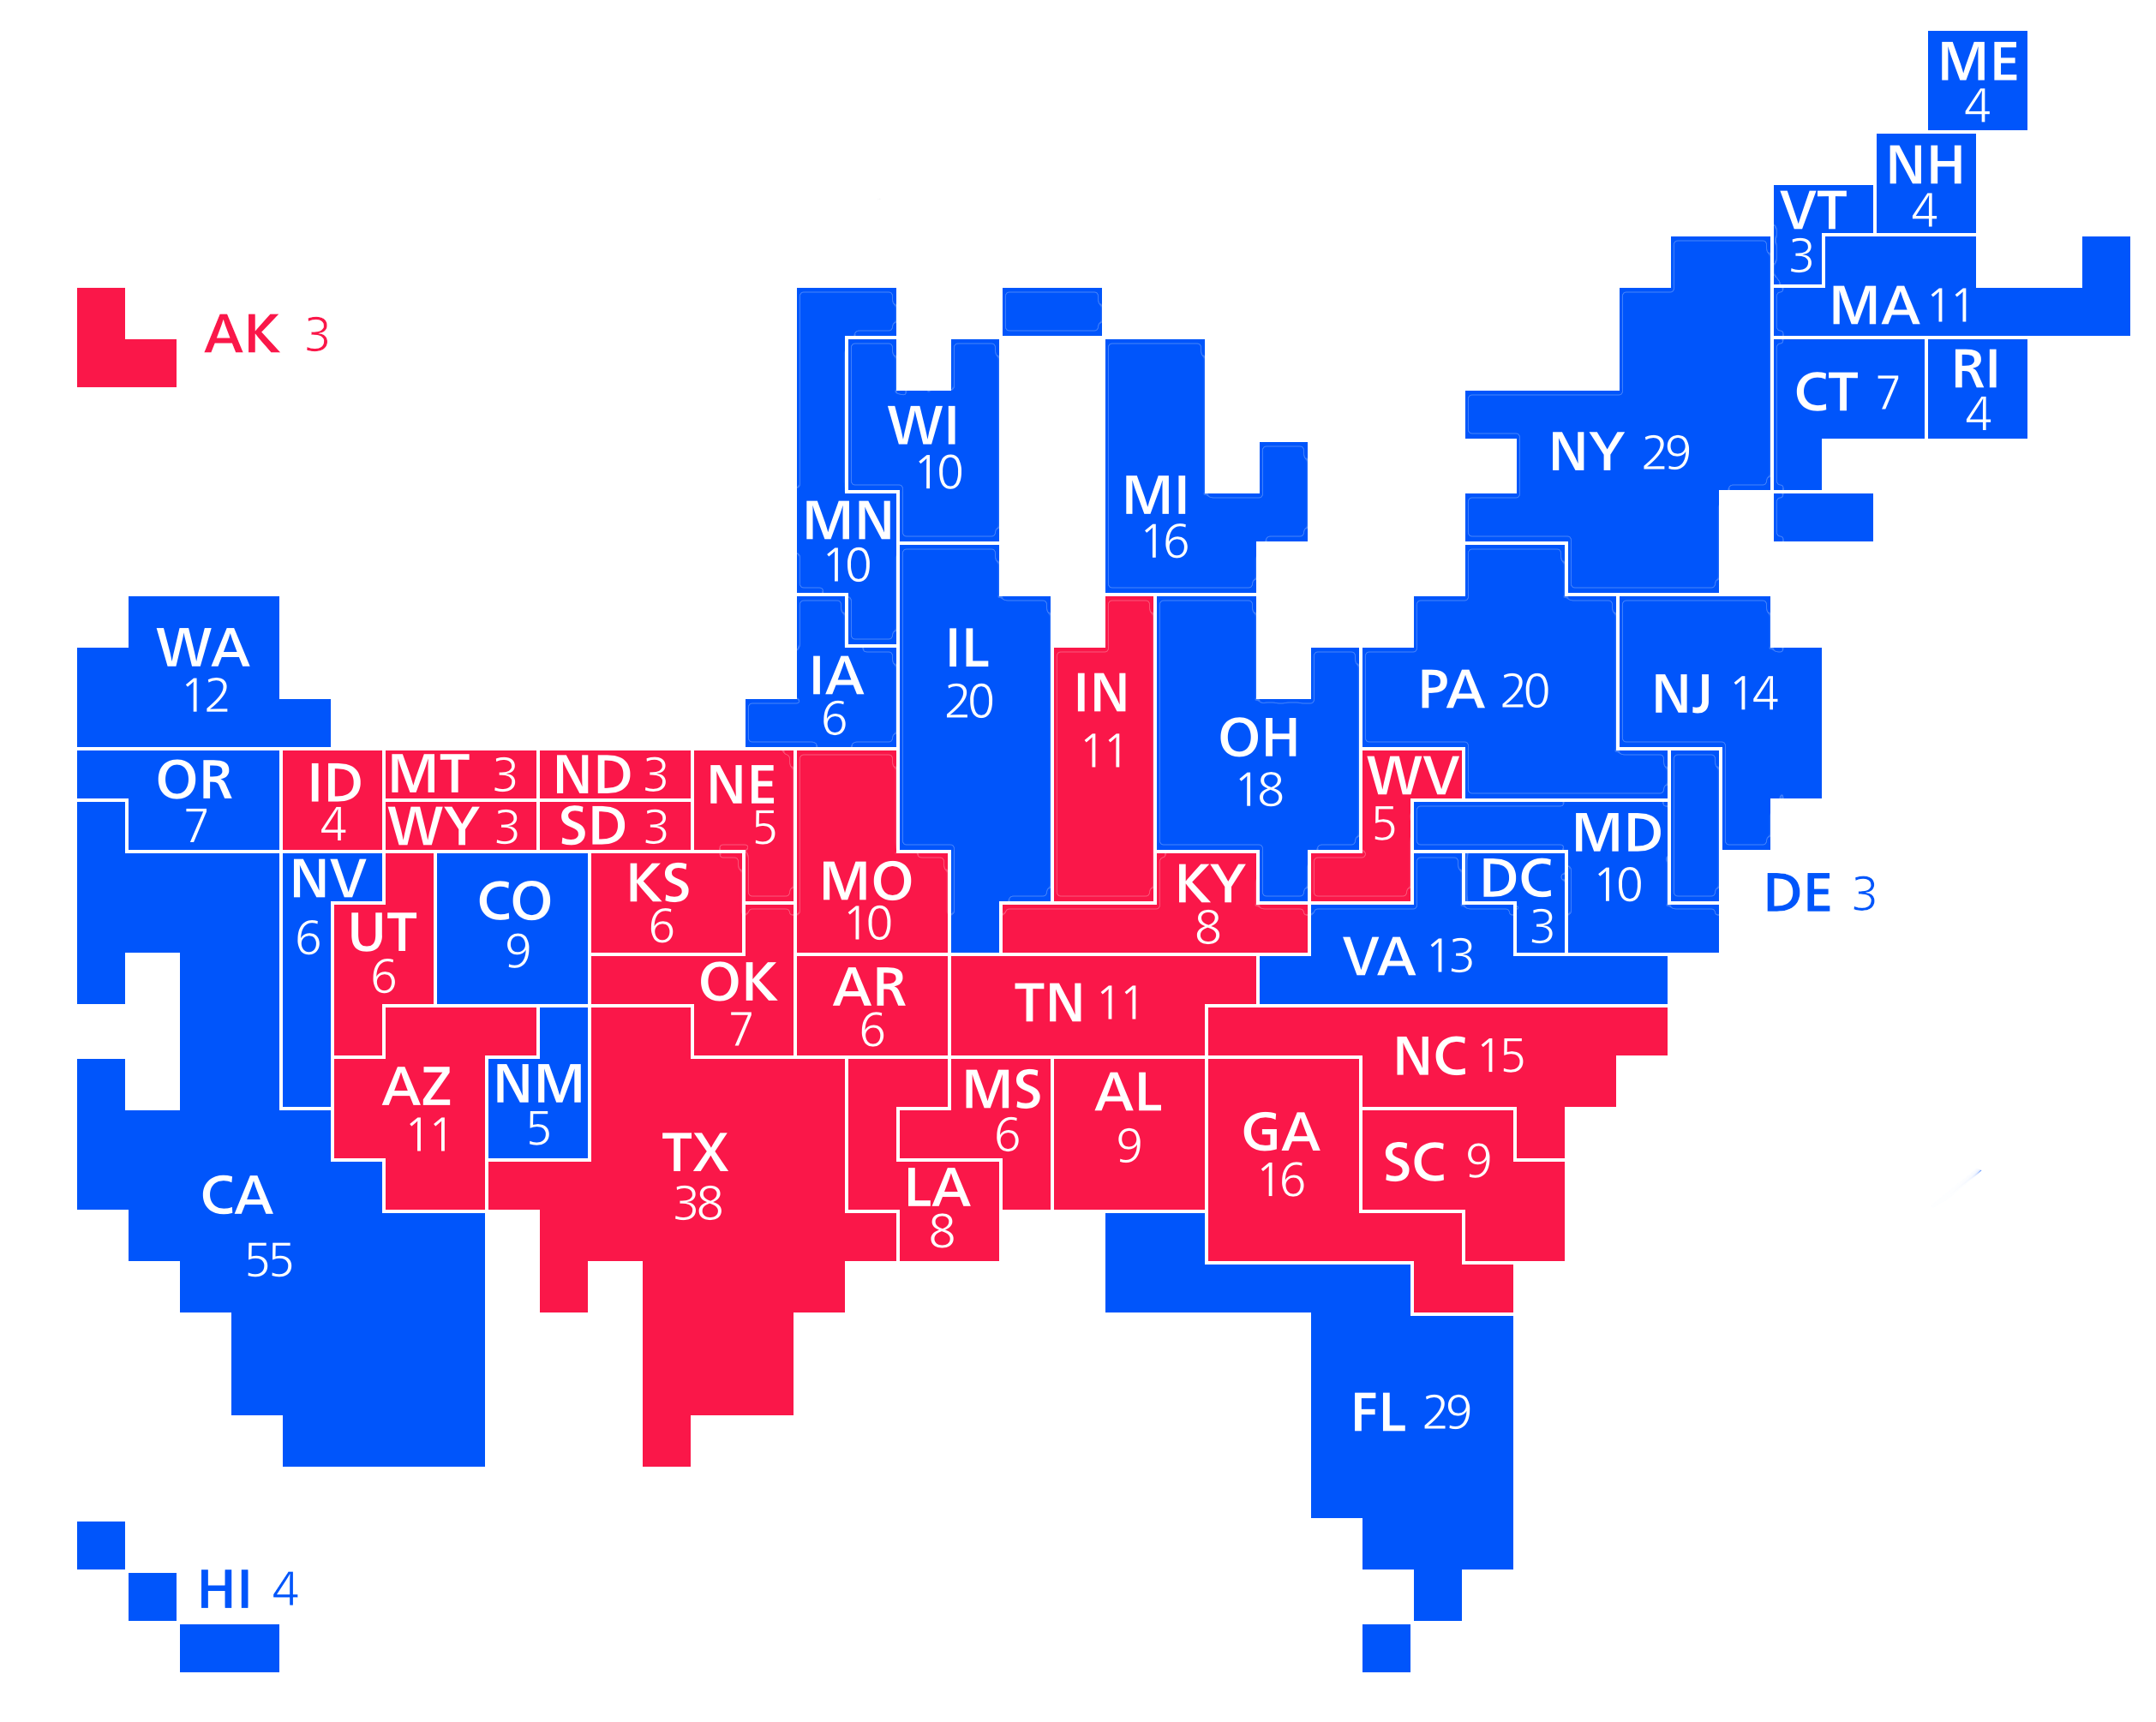 2012 US election results maps of different kinds.